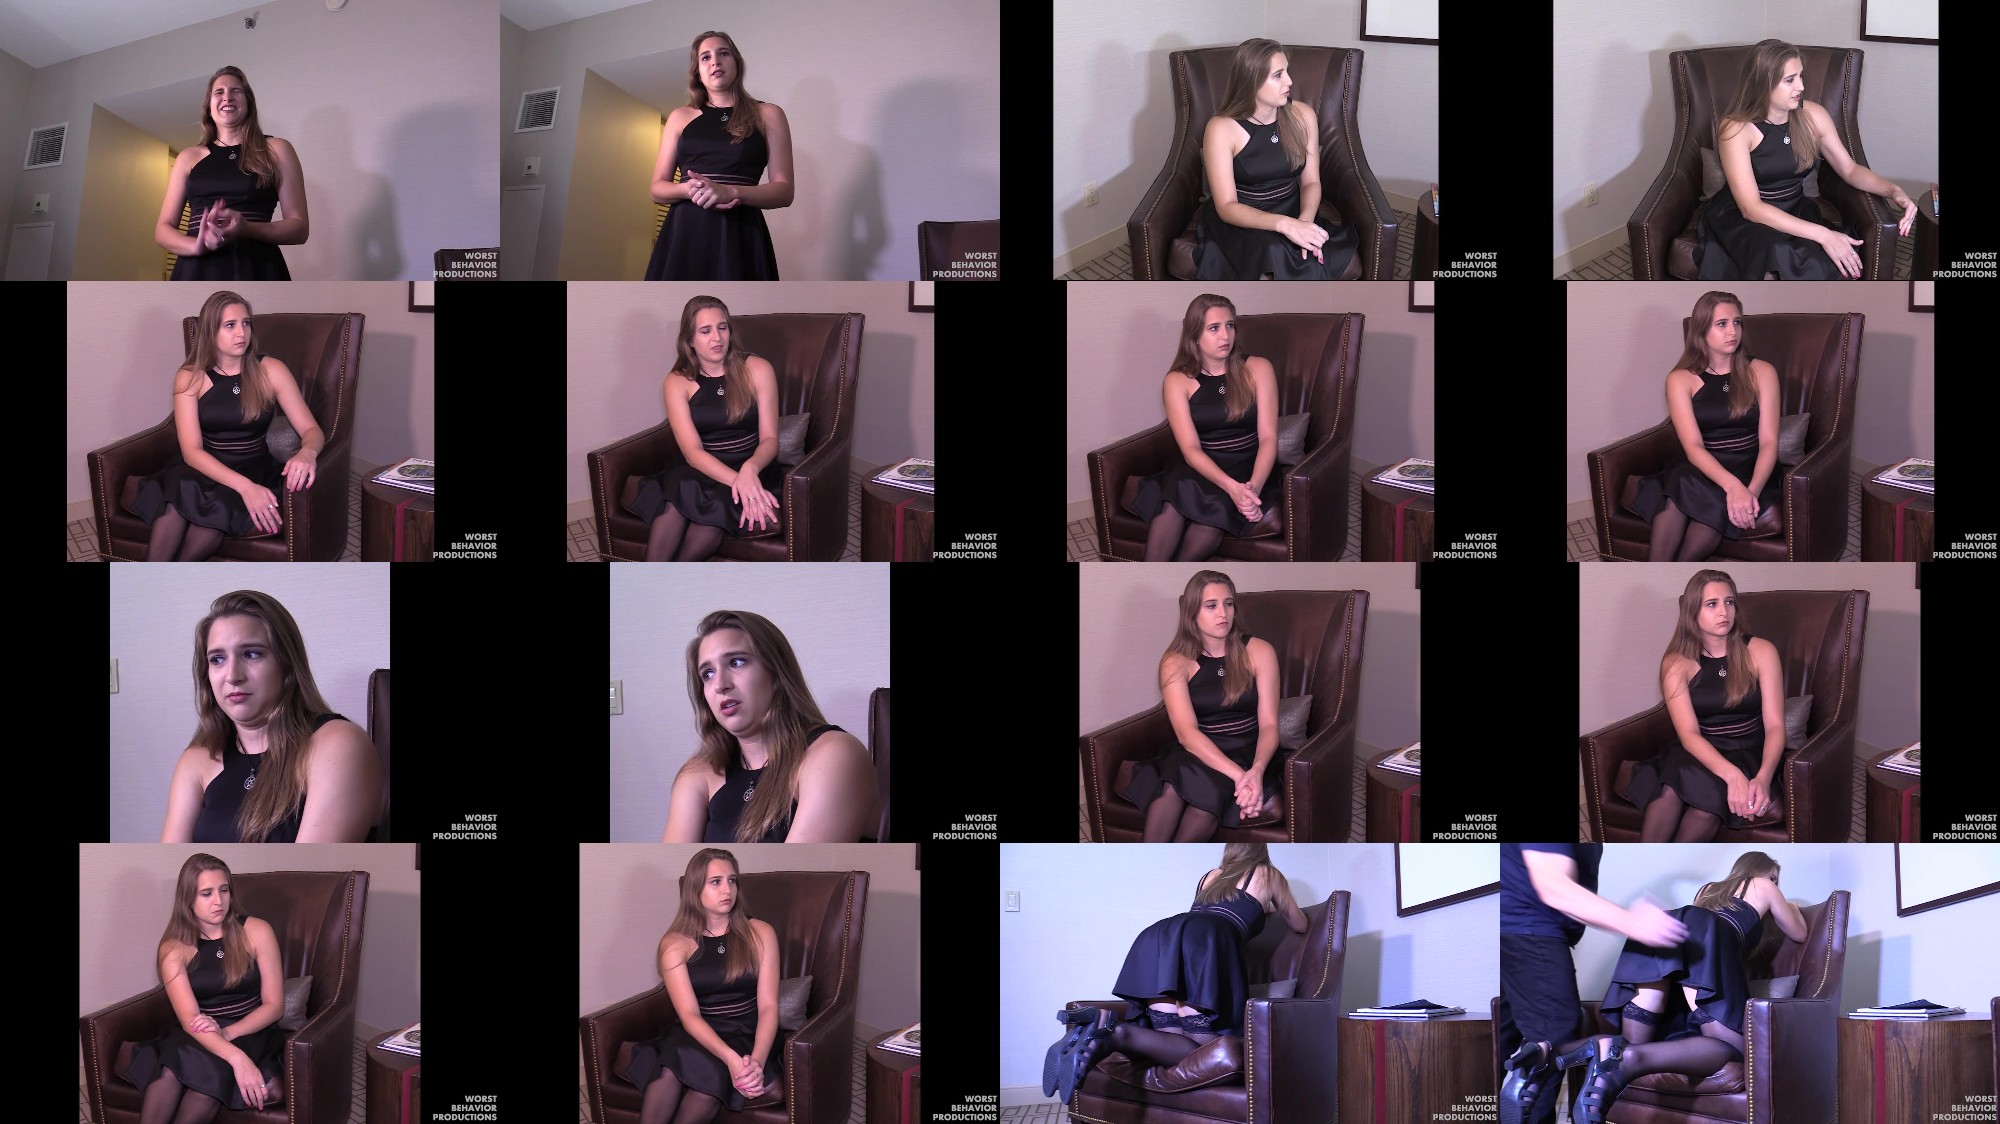 Reyna St Clair Mr. Smith   Reyna Punished By The Professor   Spanked And Paddled   Part 1 - Worst Behavior Productions – MP4/HD – Reyna St Clair, Mr  Smith - Reyna Punished By The Professor - Spanked And Paddled - Part 1 (Release date: Mar. 30, 2021)